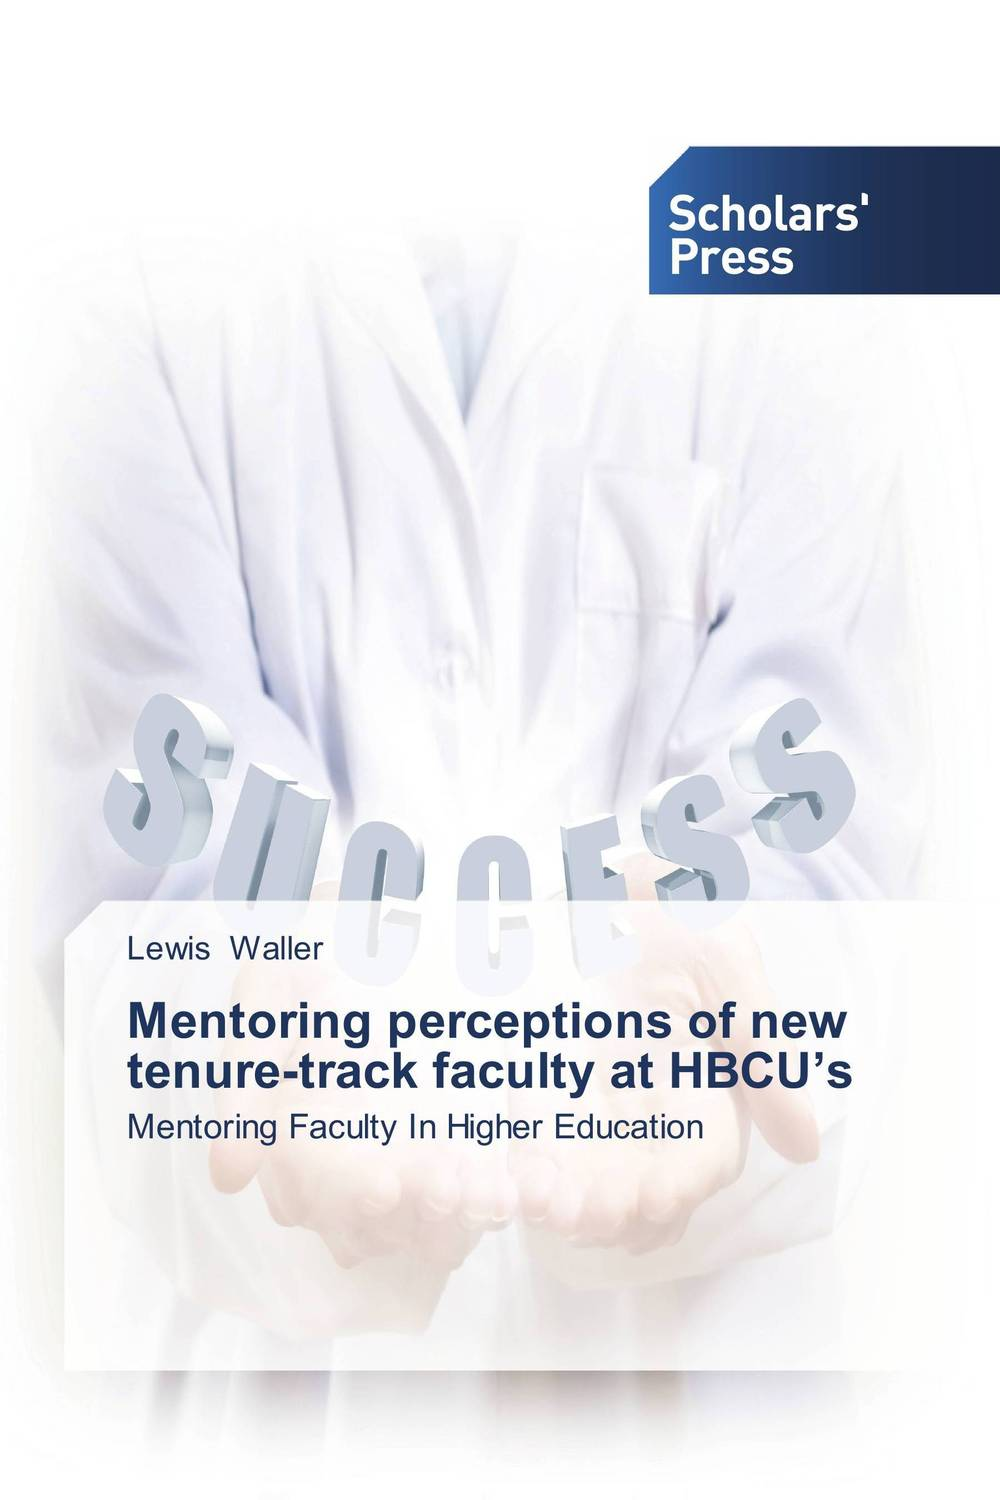 Mentoring perceptions of new tenure-track faculty at HBCU's further techniques for coaching and mentoring